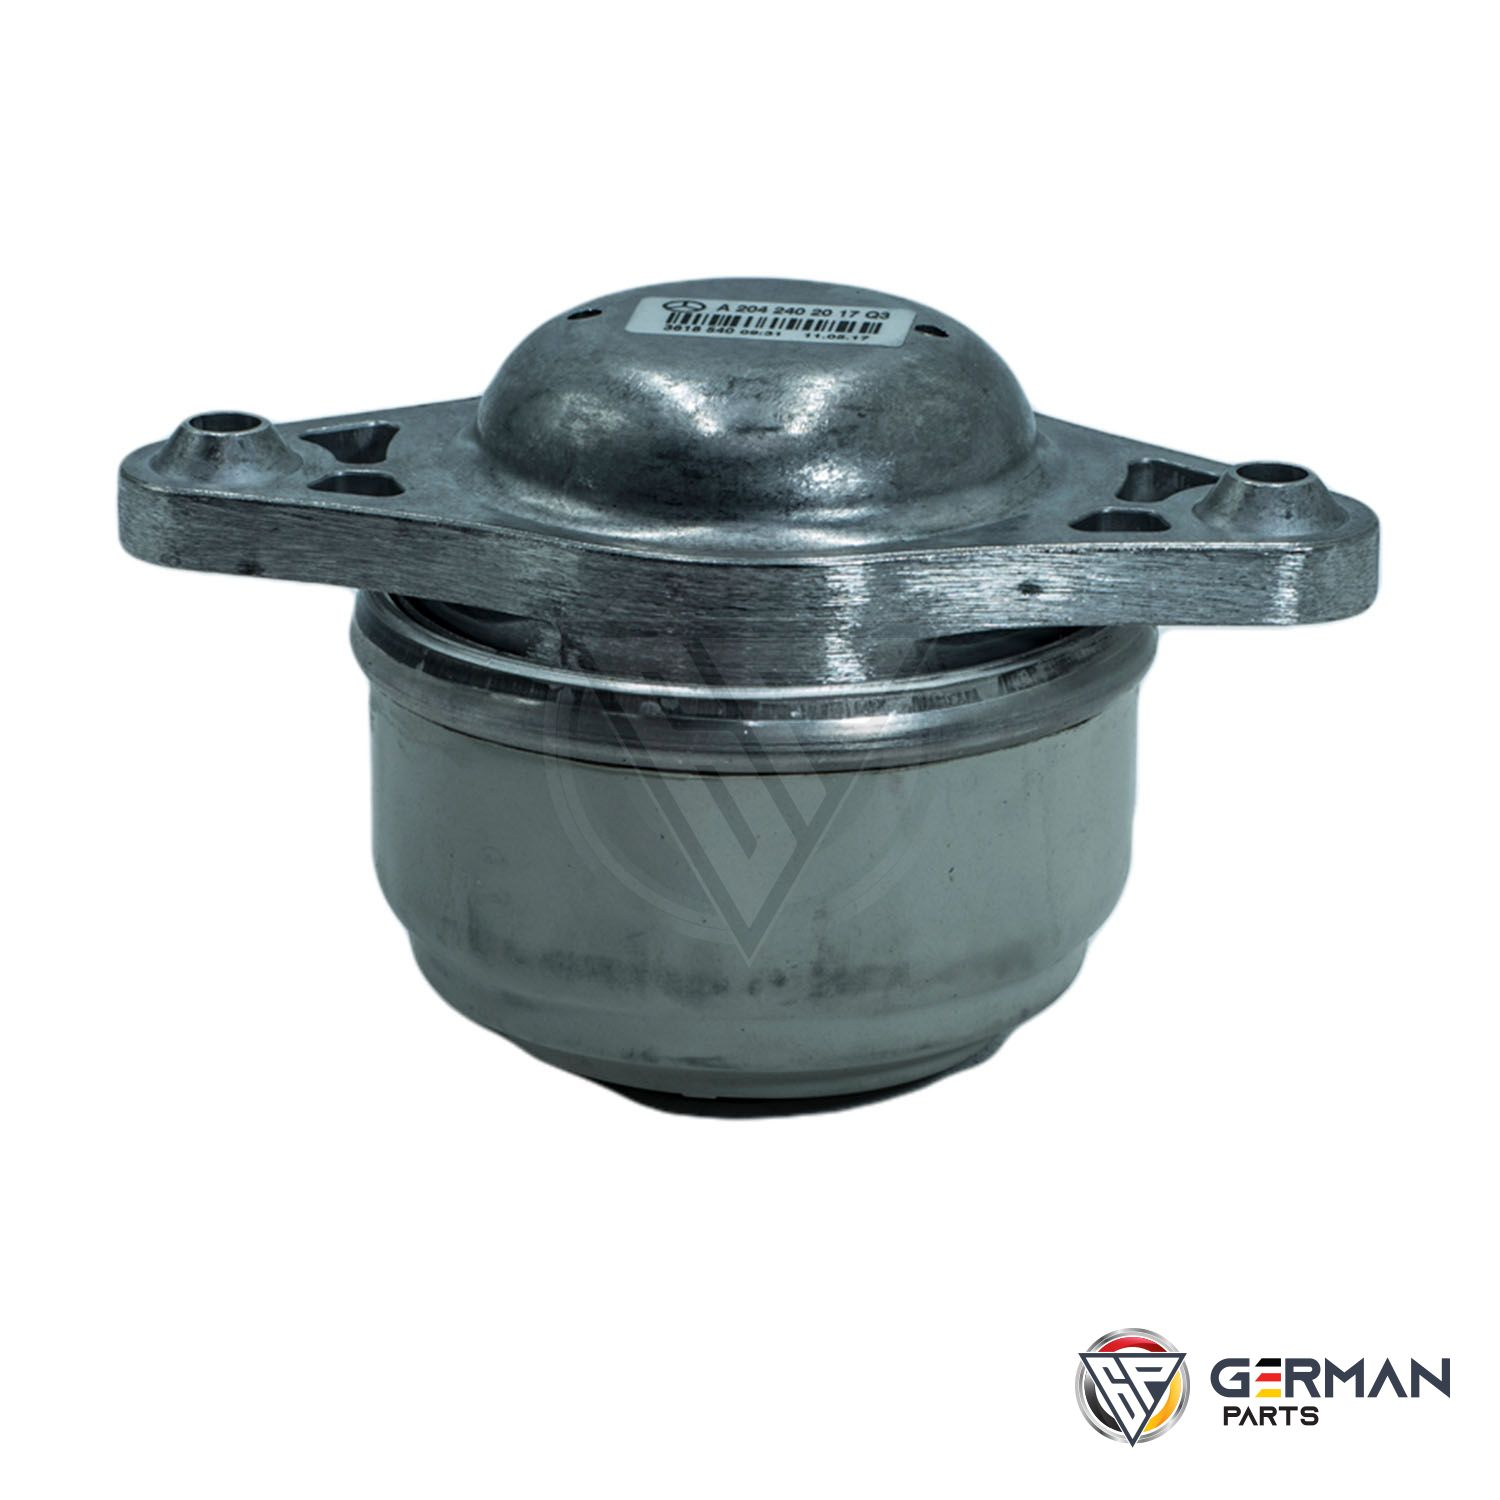 Buy Genuine Mercedes Benz Engine Mounting 2042402017 - German Parts